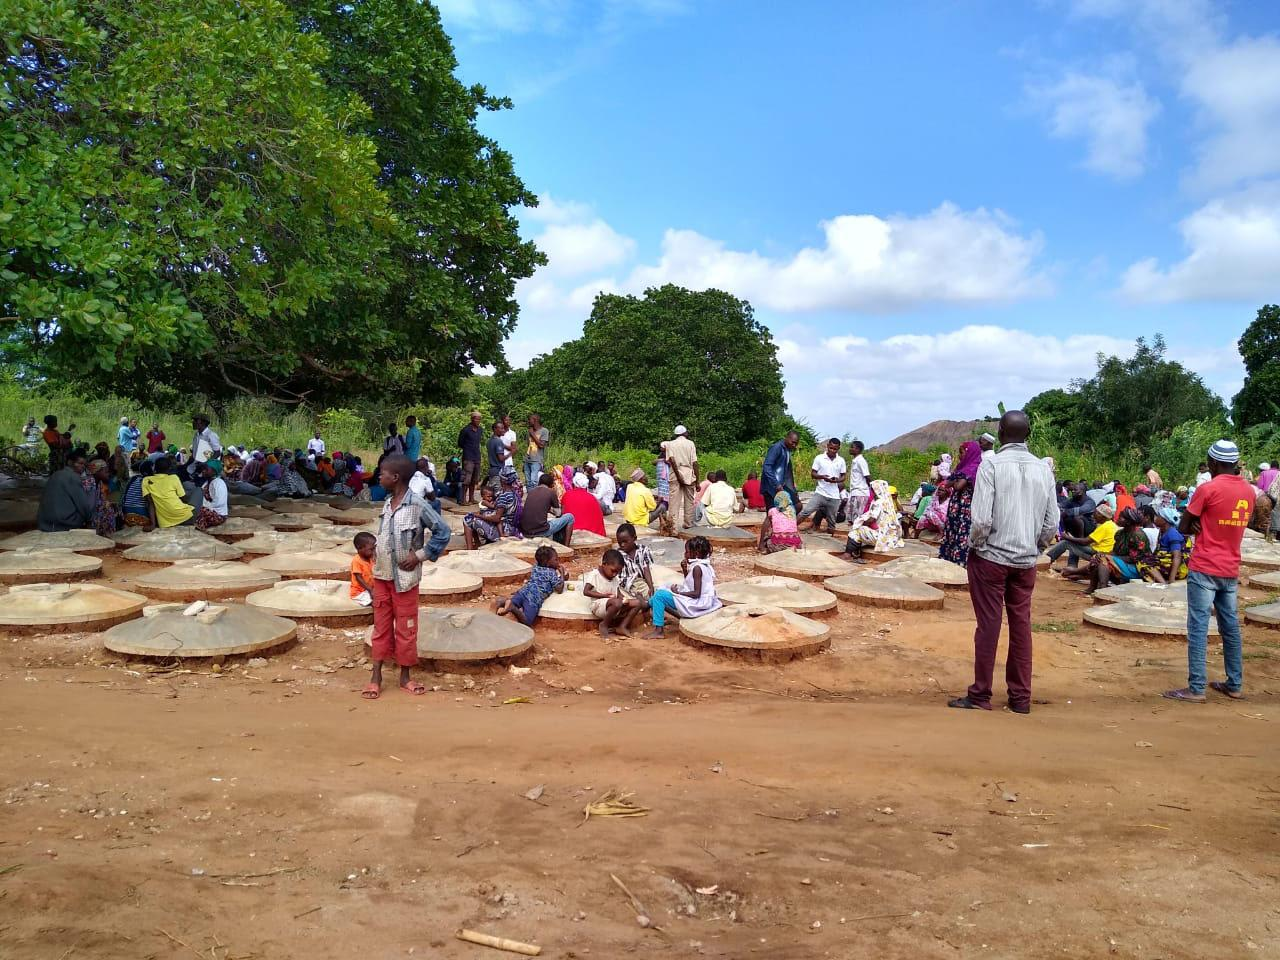 displaced people's camp, Mozambique